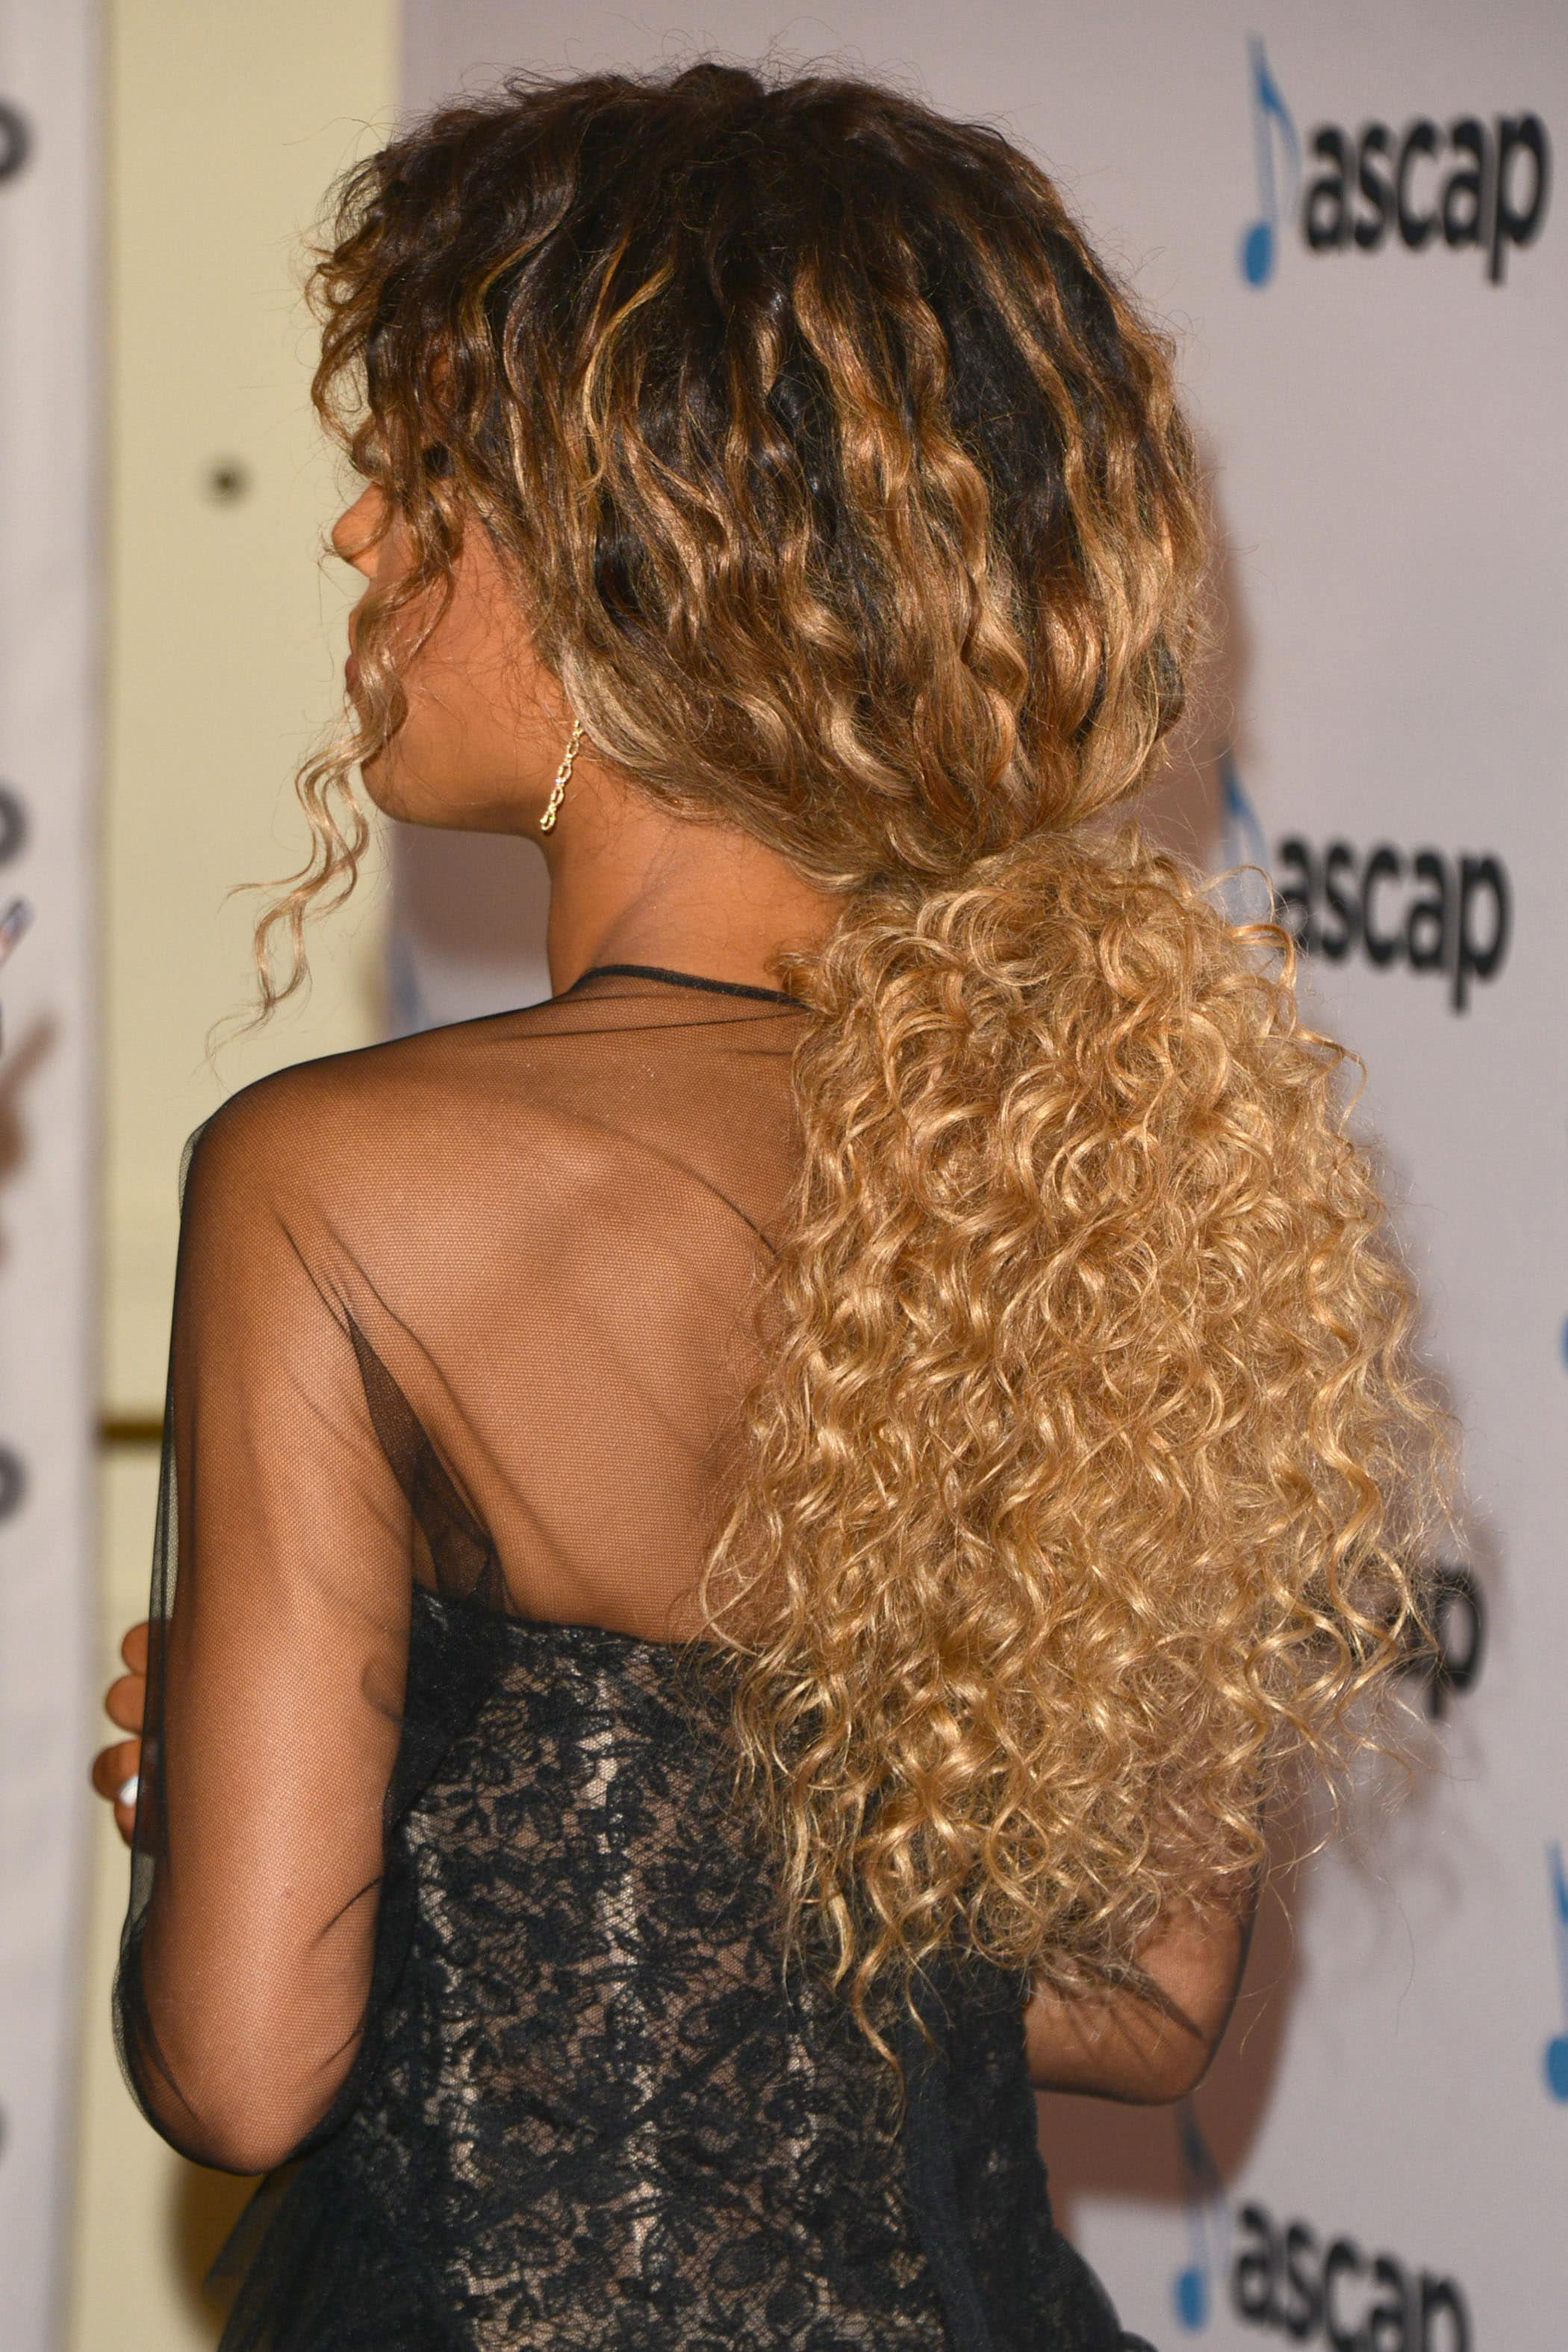 Woman with long dark roots and golden blonde curls styled into a low ponytail